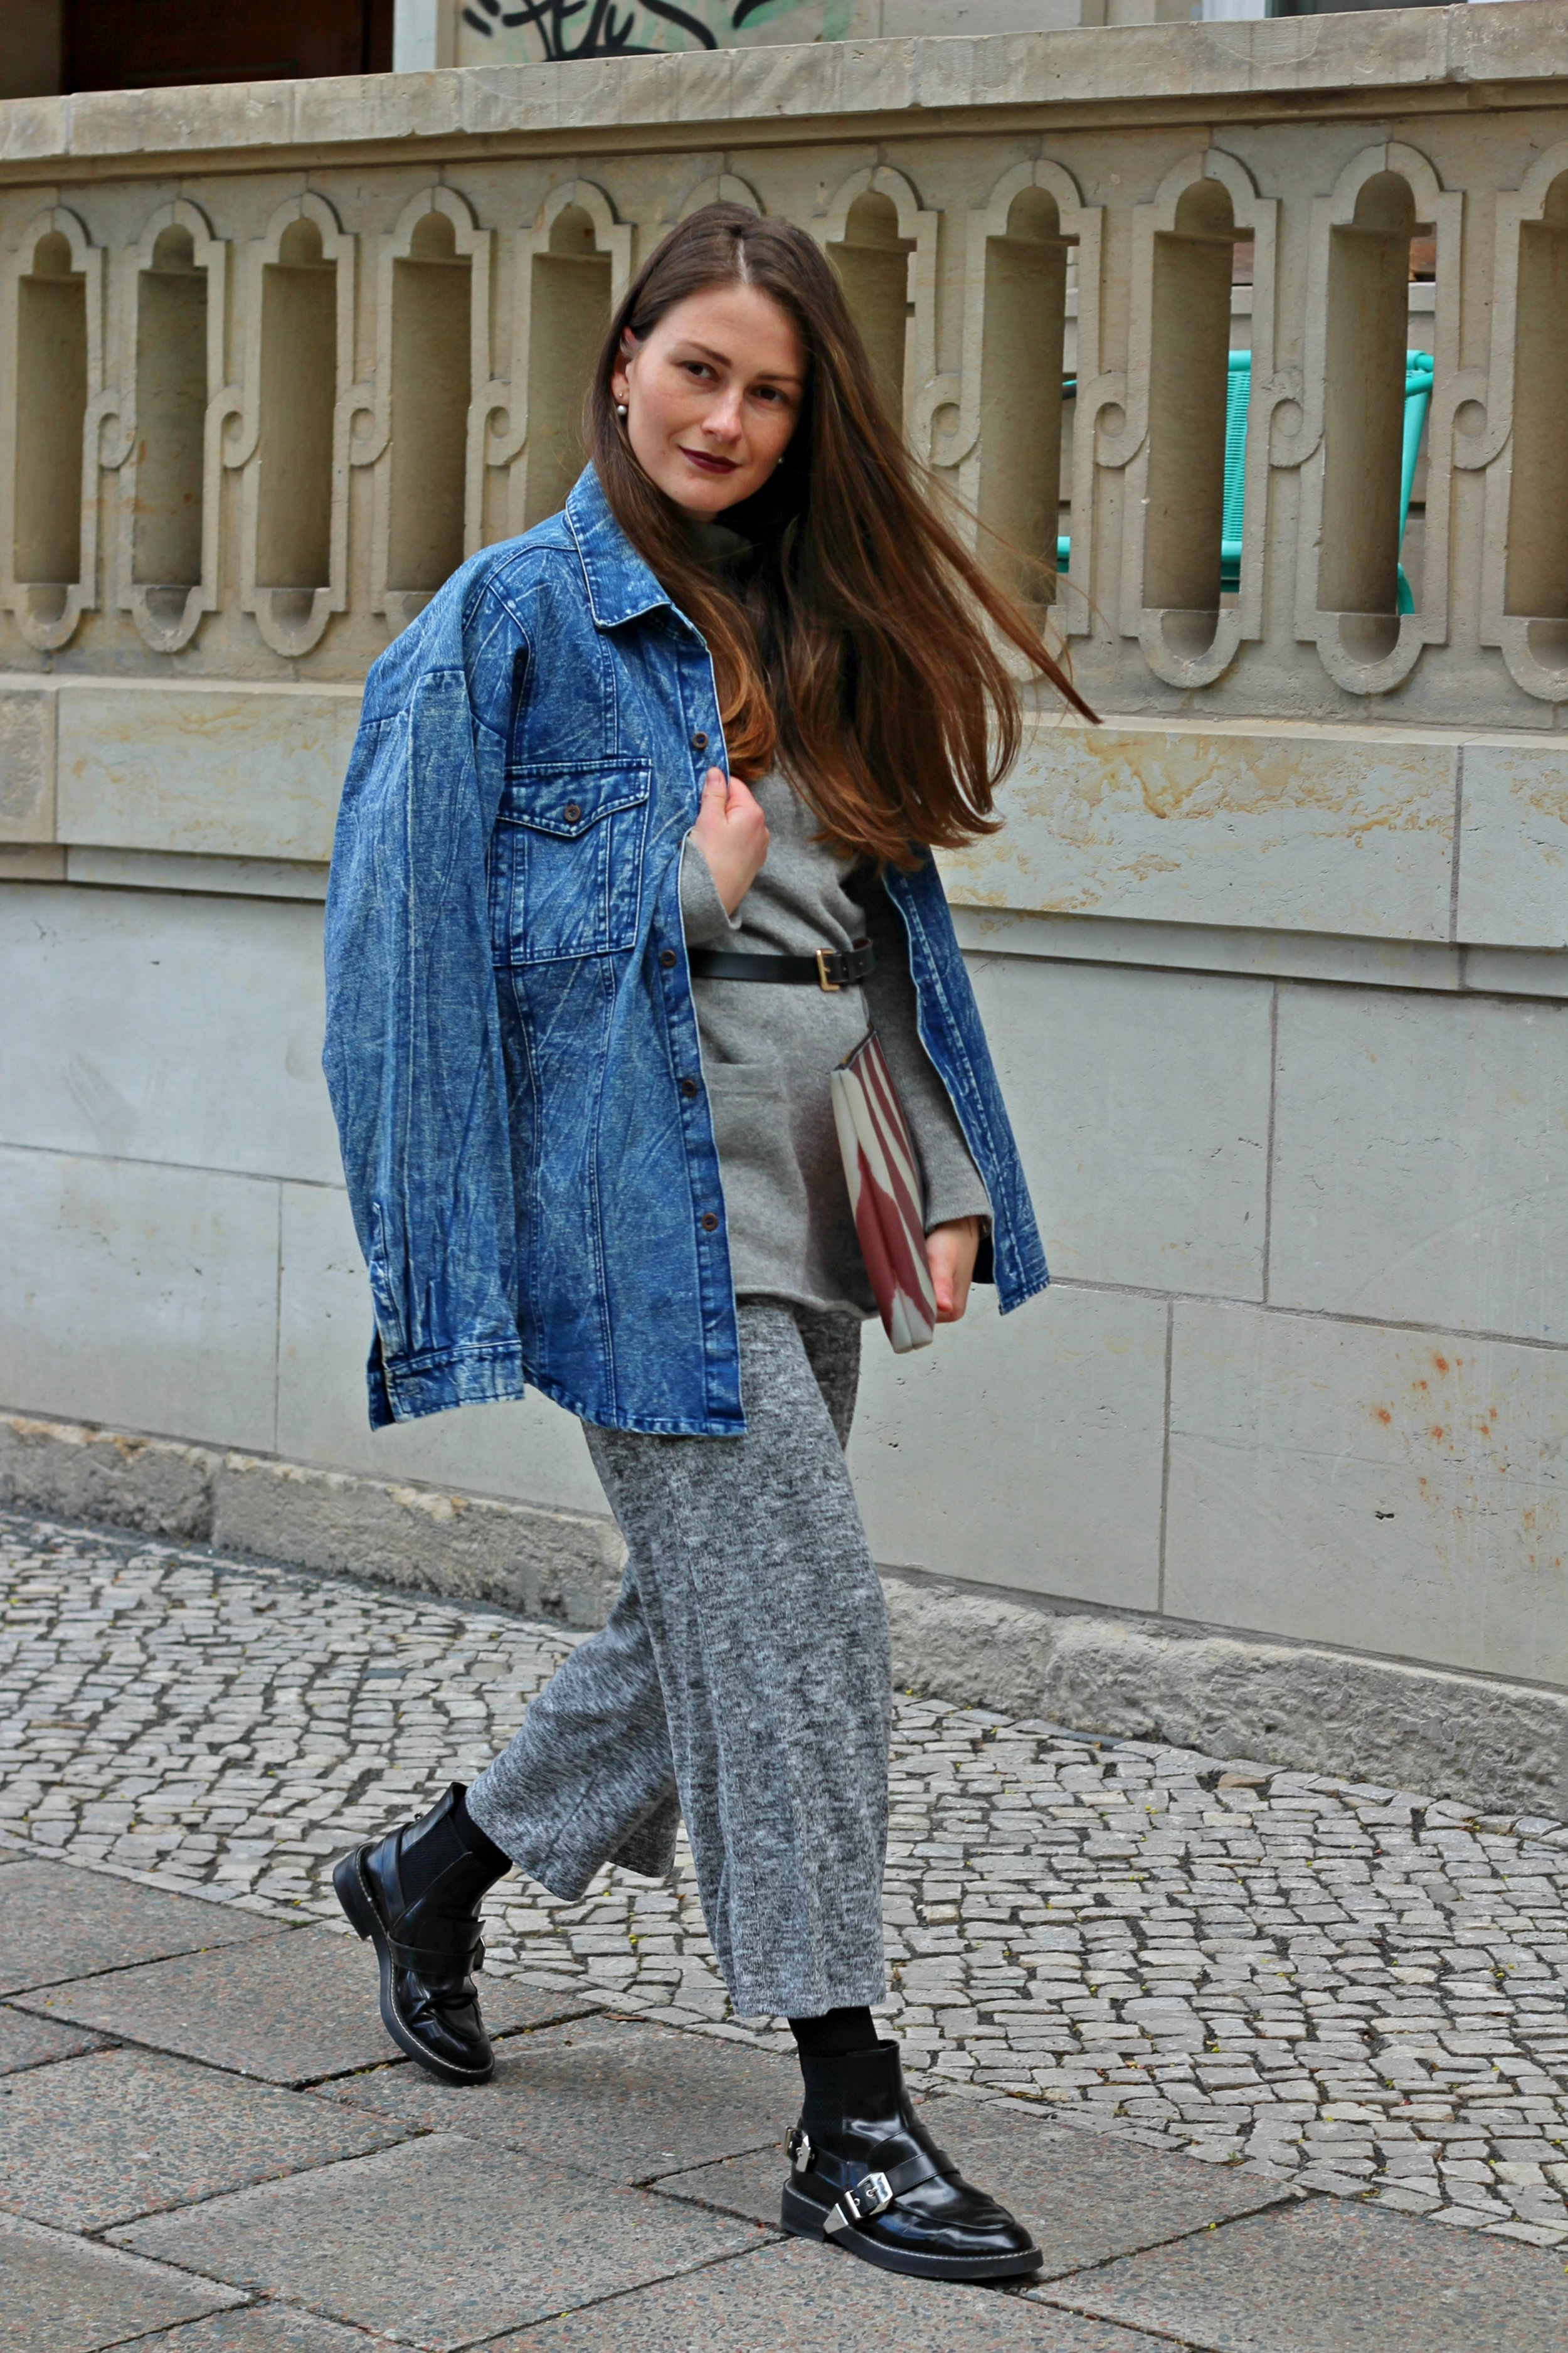 IMG_5972annaporter-denim-jacket-culottes-chelsea-boots-90's-outfit-style-fashion-blogger-4